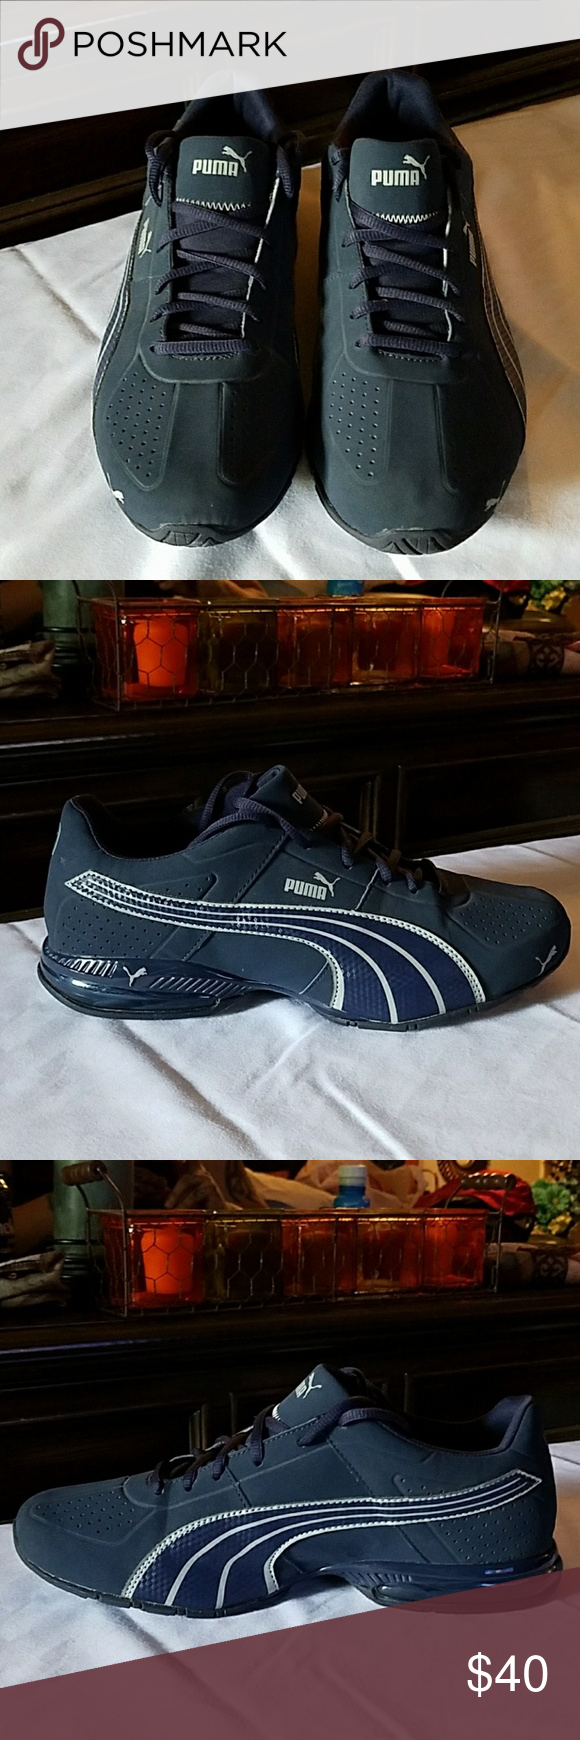 d88b72ab3f7906 Men s Puma Eco OrthoLite Running Shoes Men s navy blue and gray detailed running  shoes. Beautiful